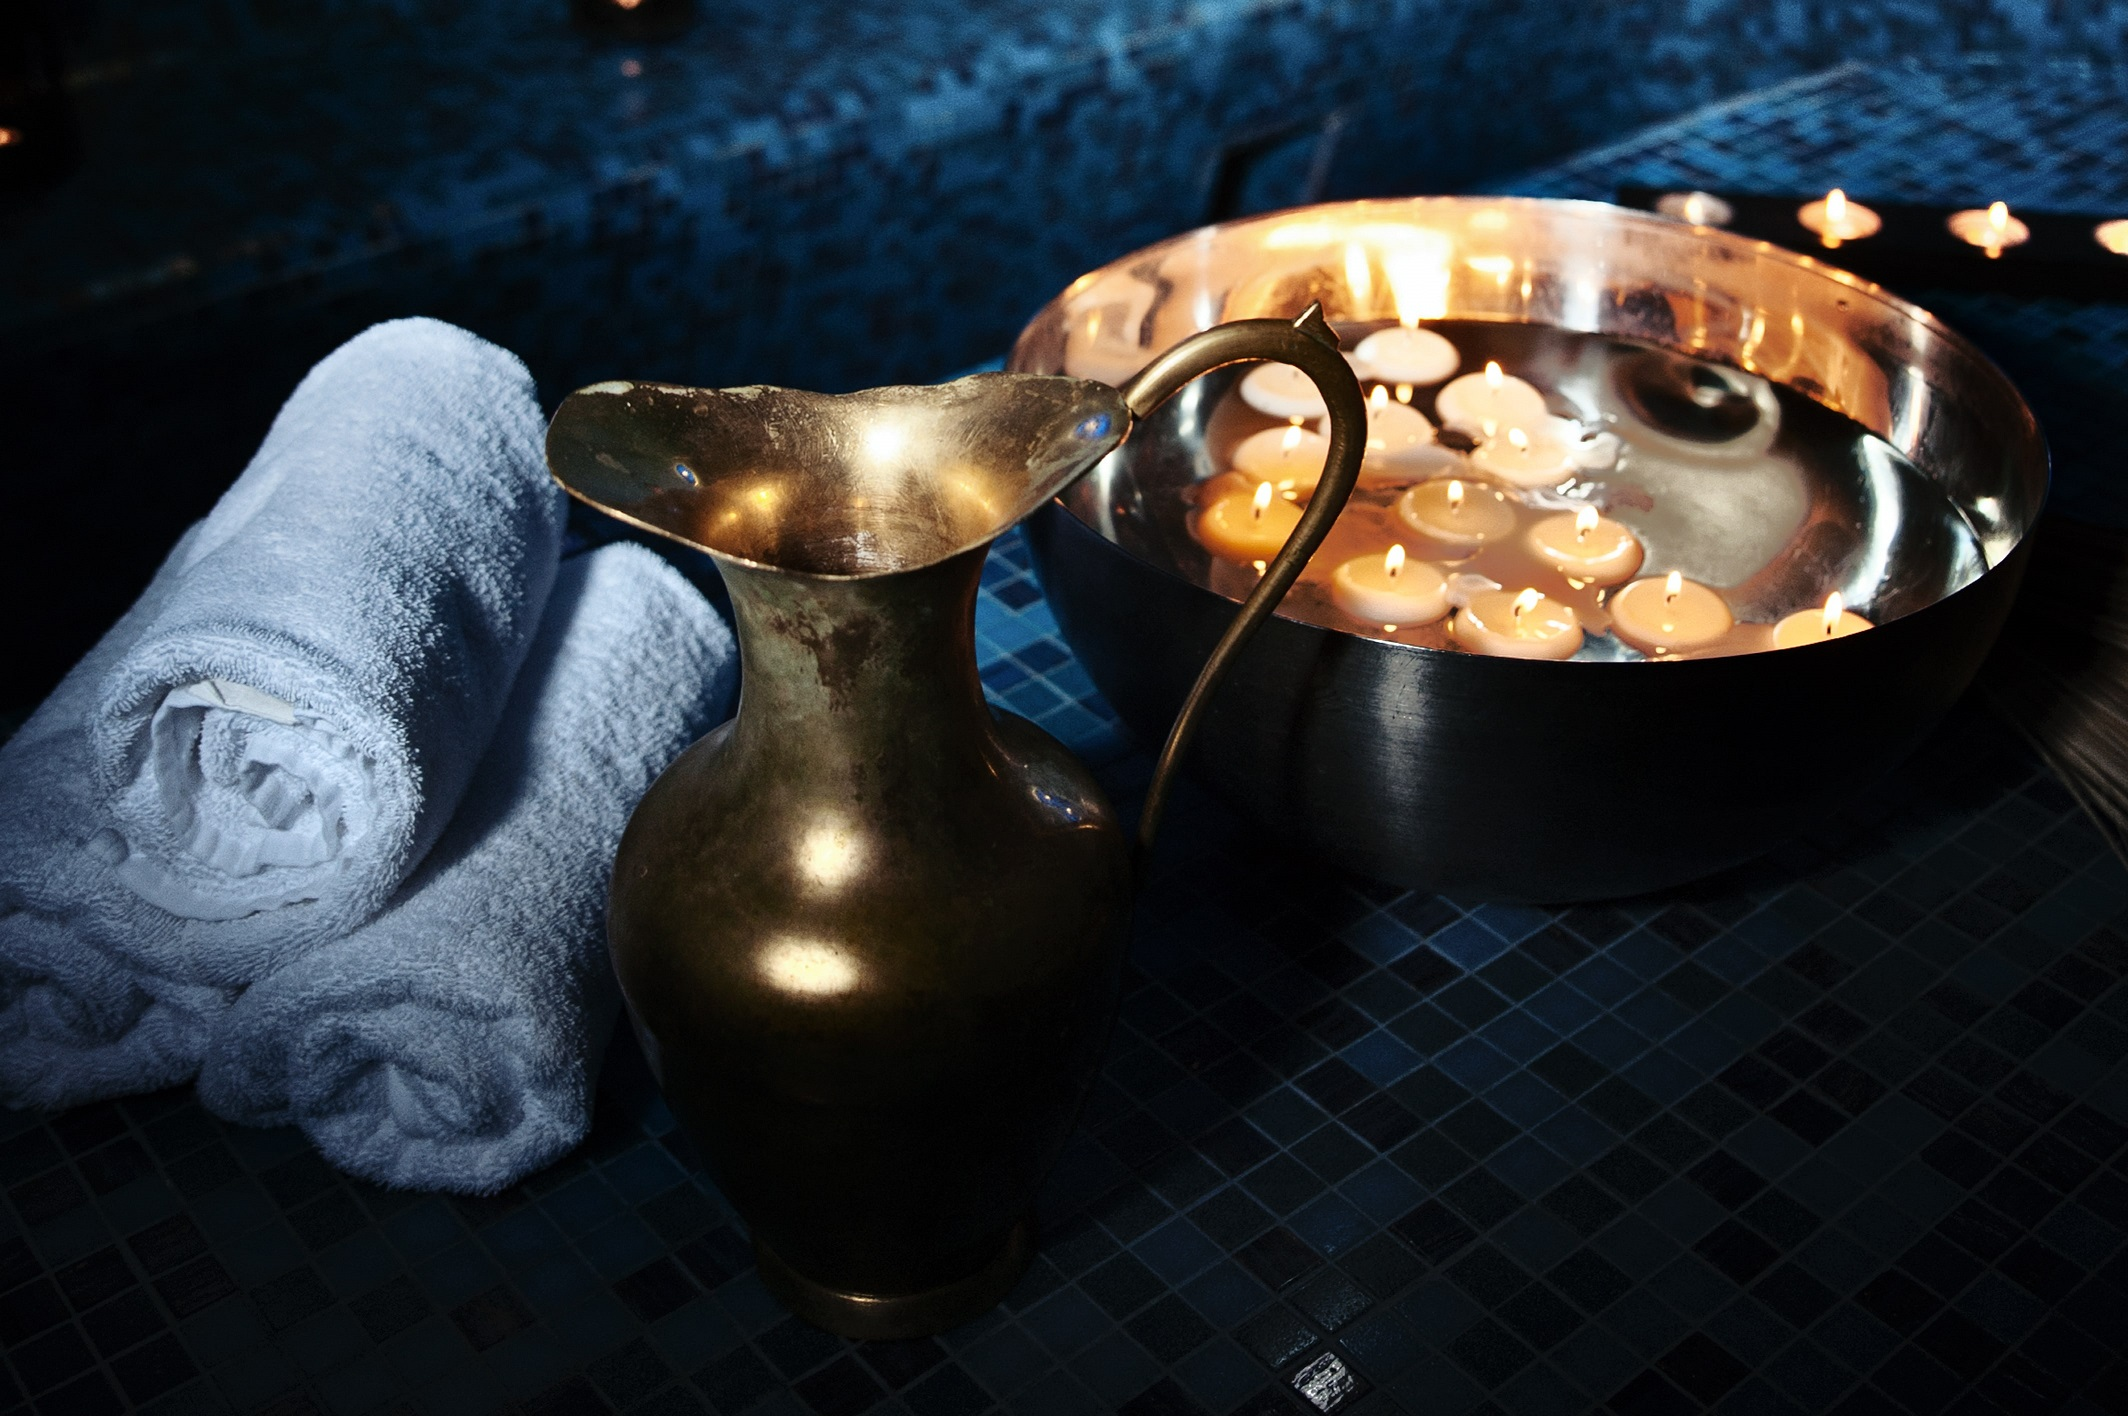 Candles in bowl, towels and jug in Hammam spa.